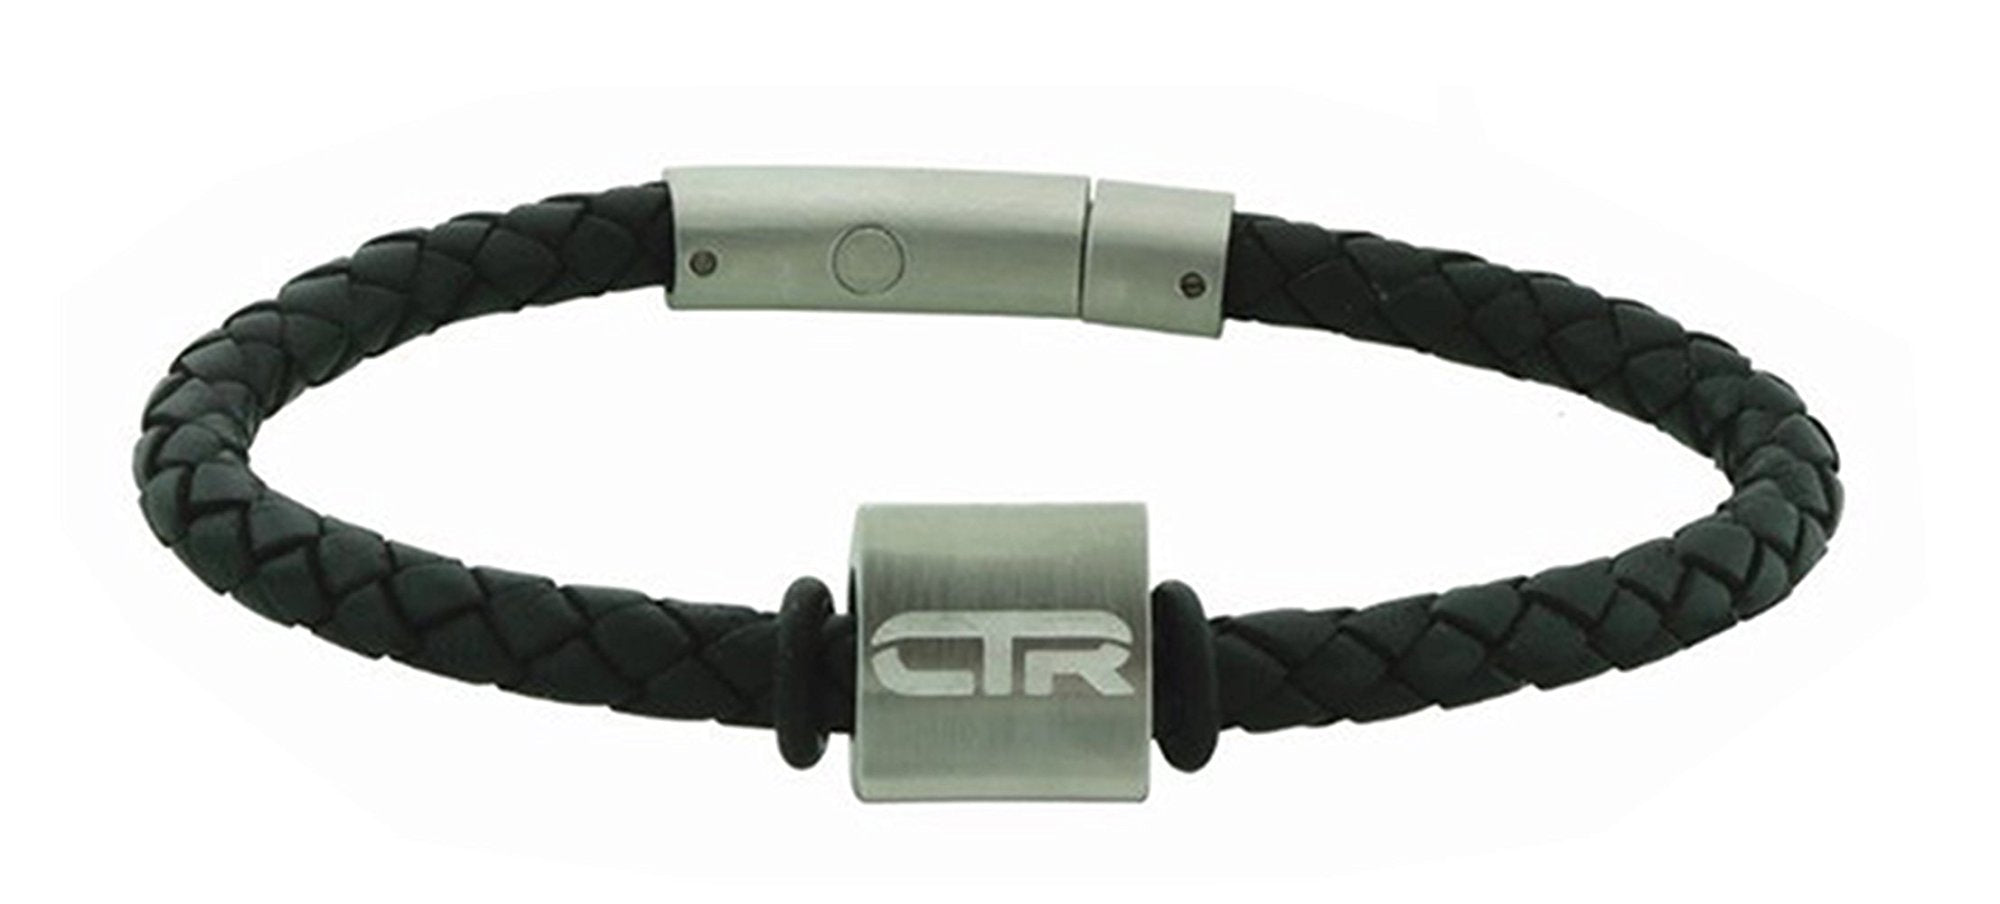 L4 Leather & Stainless Steel CTR Bracelet with Magnetic clasp Suface